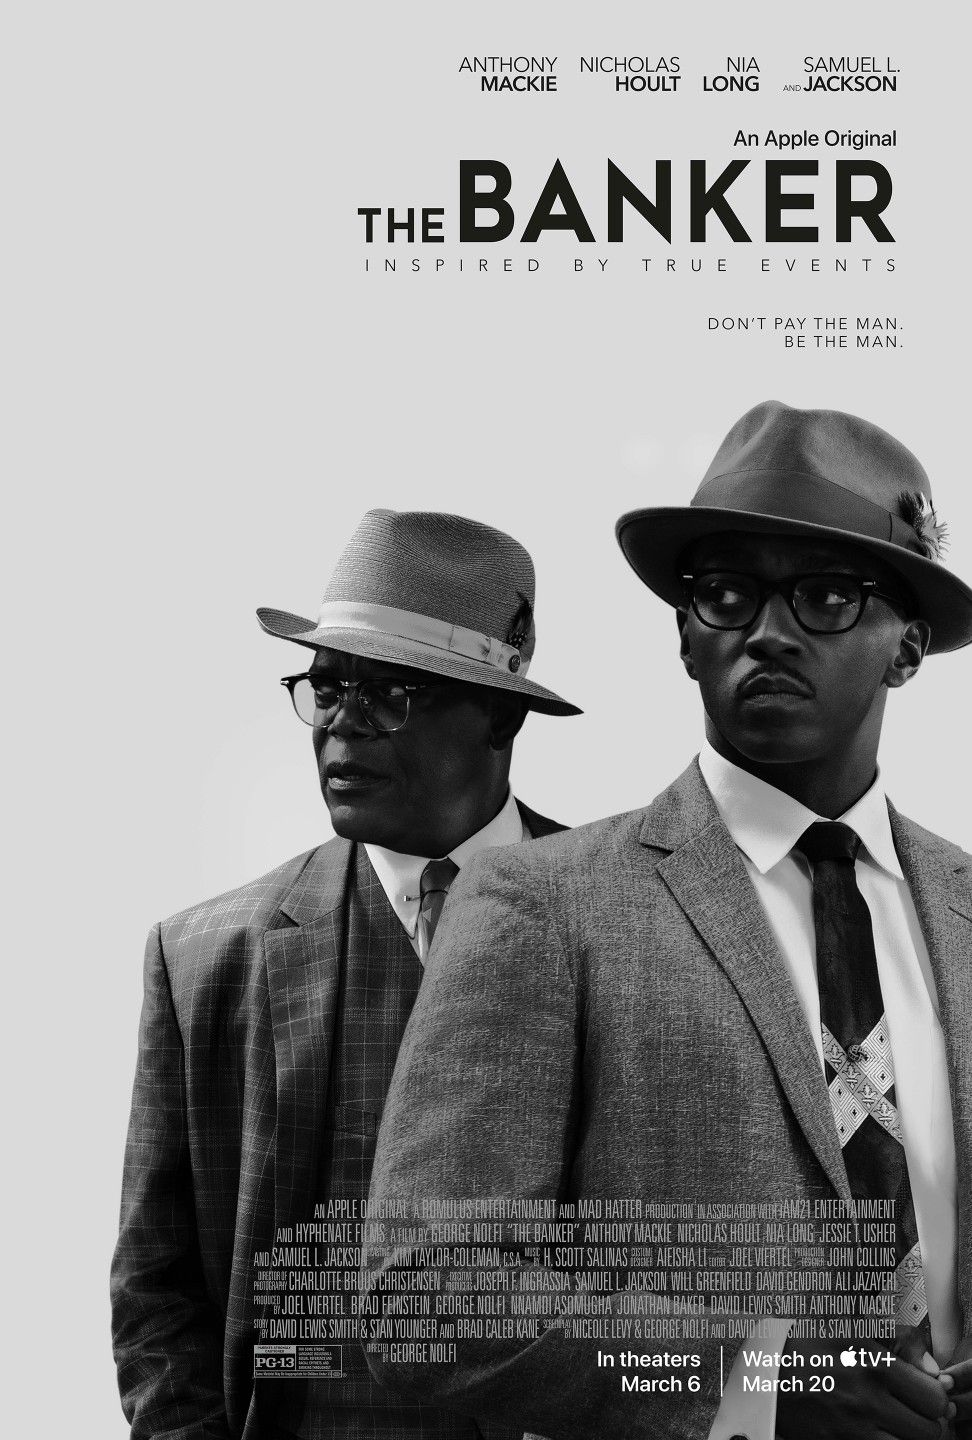 The Banker Film Histoire Vraie Lutte Anti Raciale Samuel L Jackson Anthony Mackie Full Movies Online Free Movies